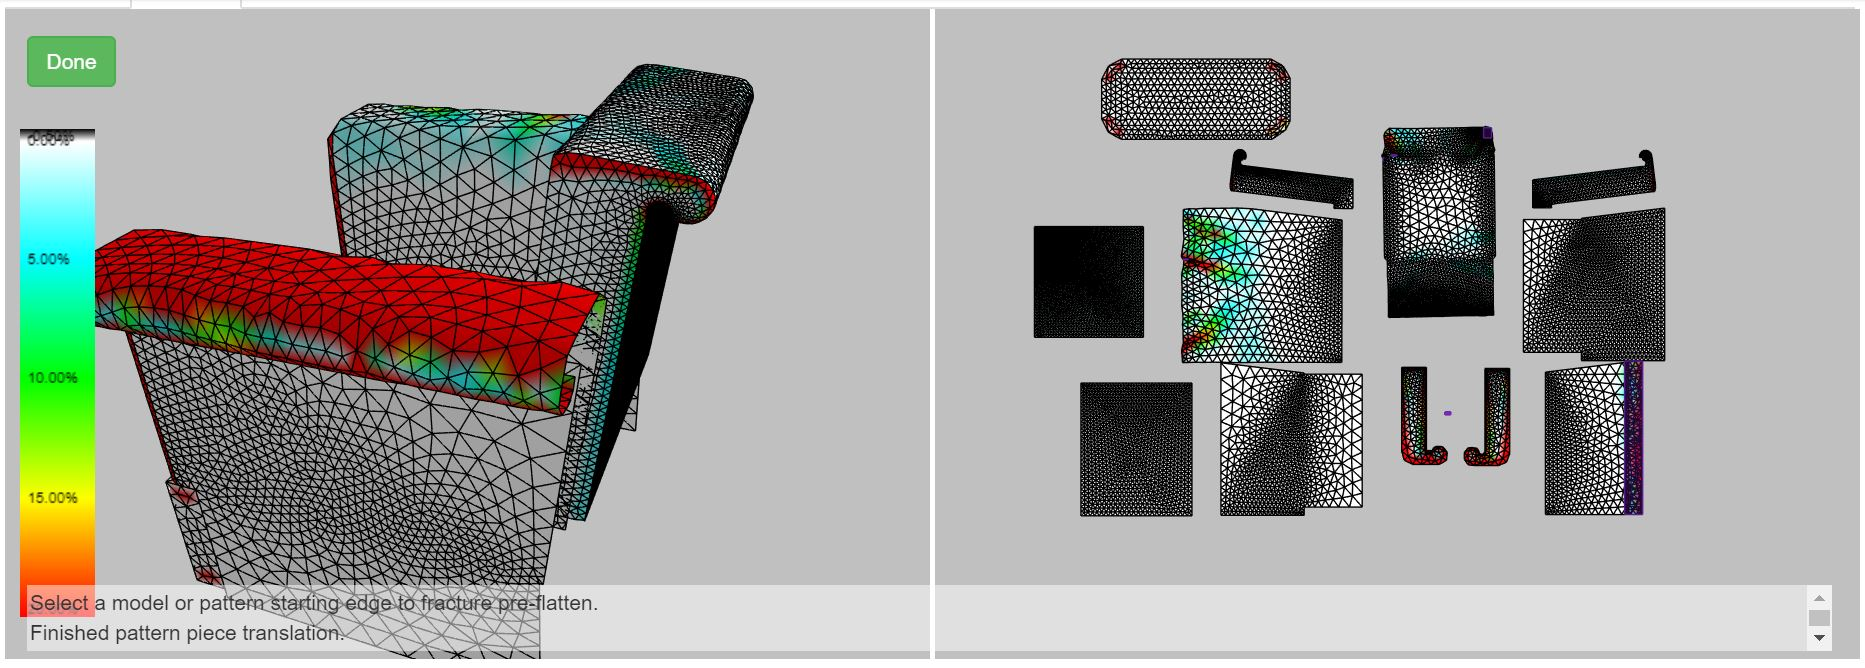 Flatten the 3D design into 2D patterns in minutes